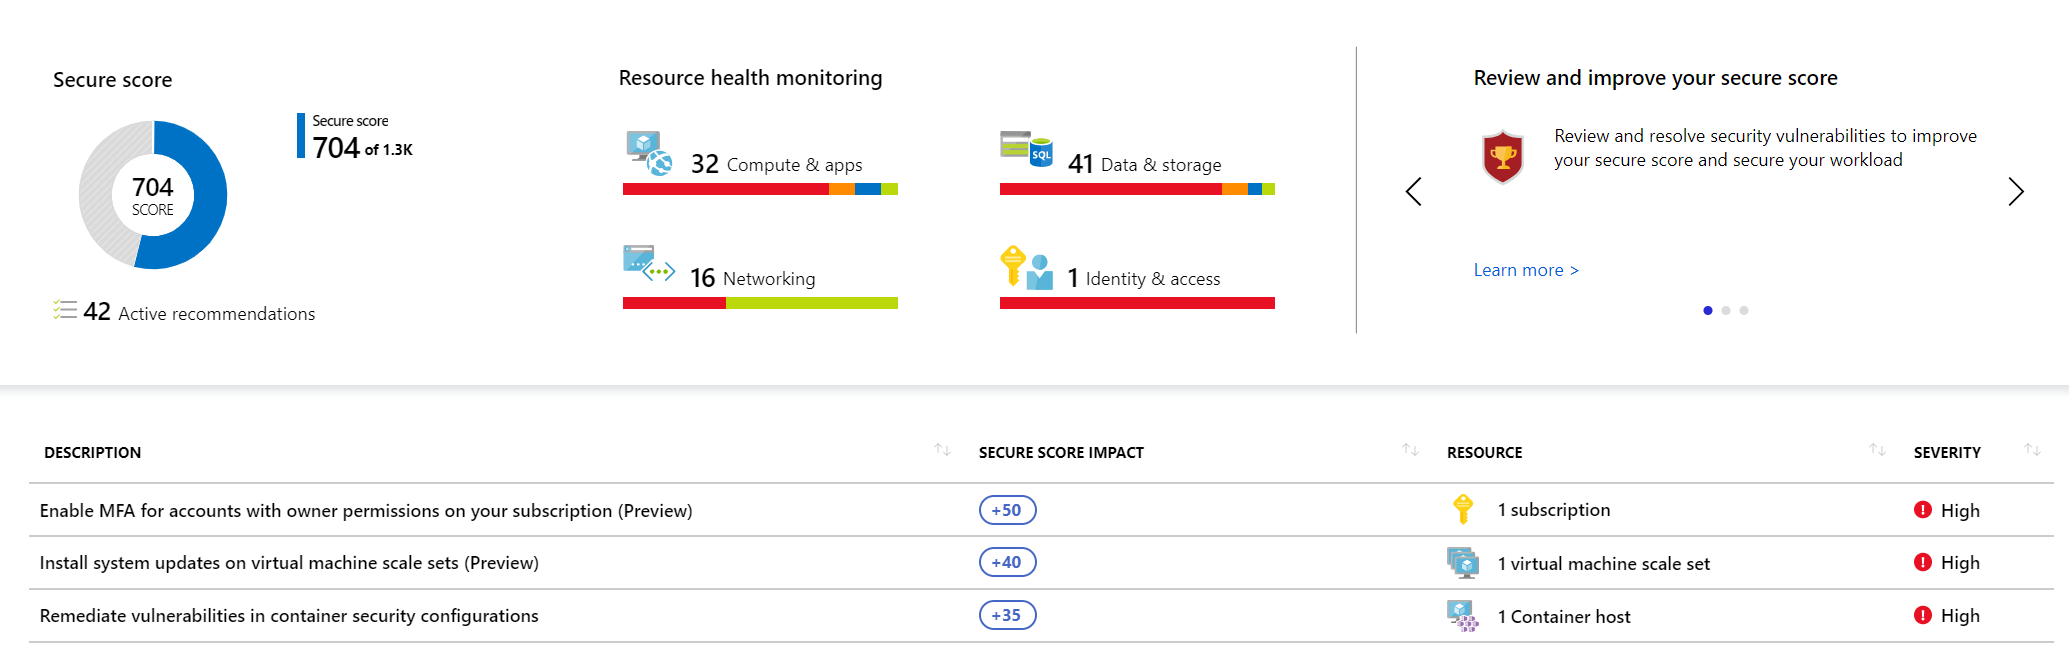 Control and improve your security posture with Azure Secure score